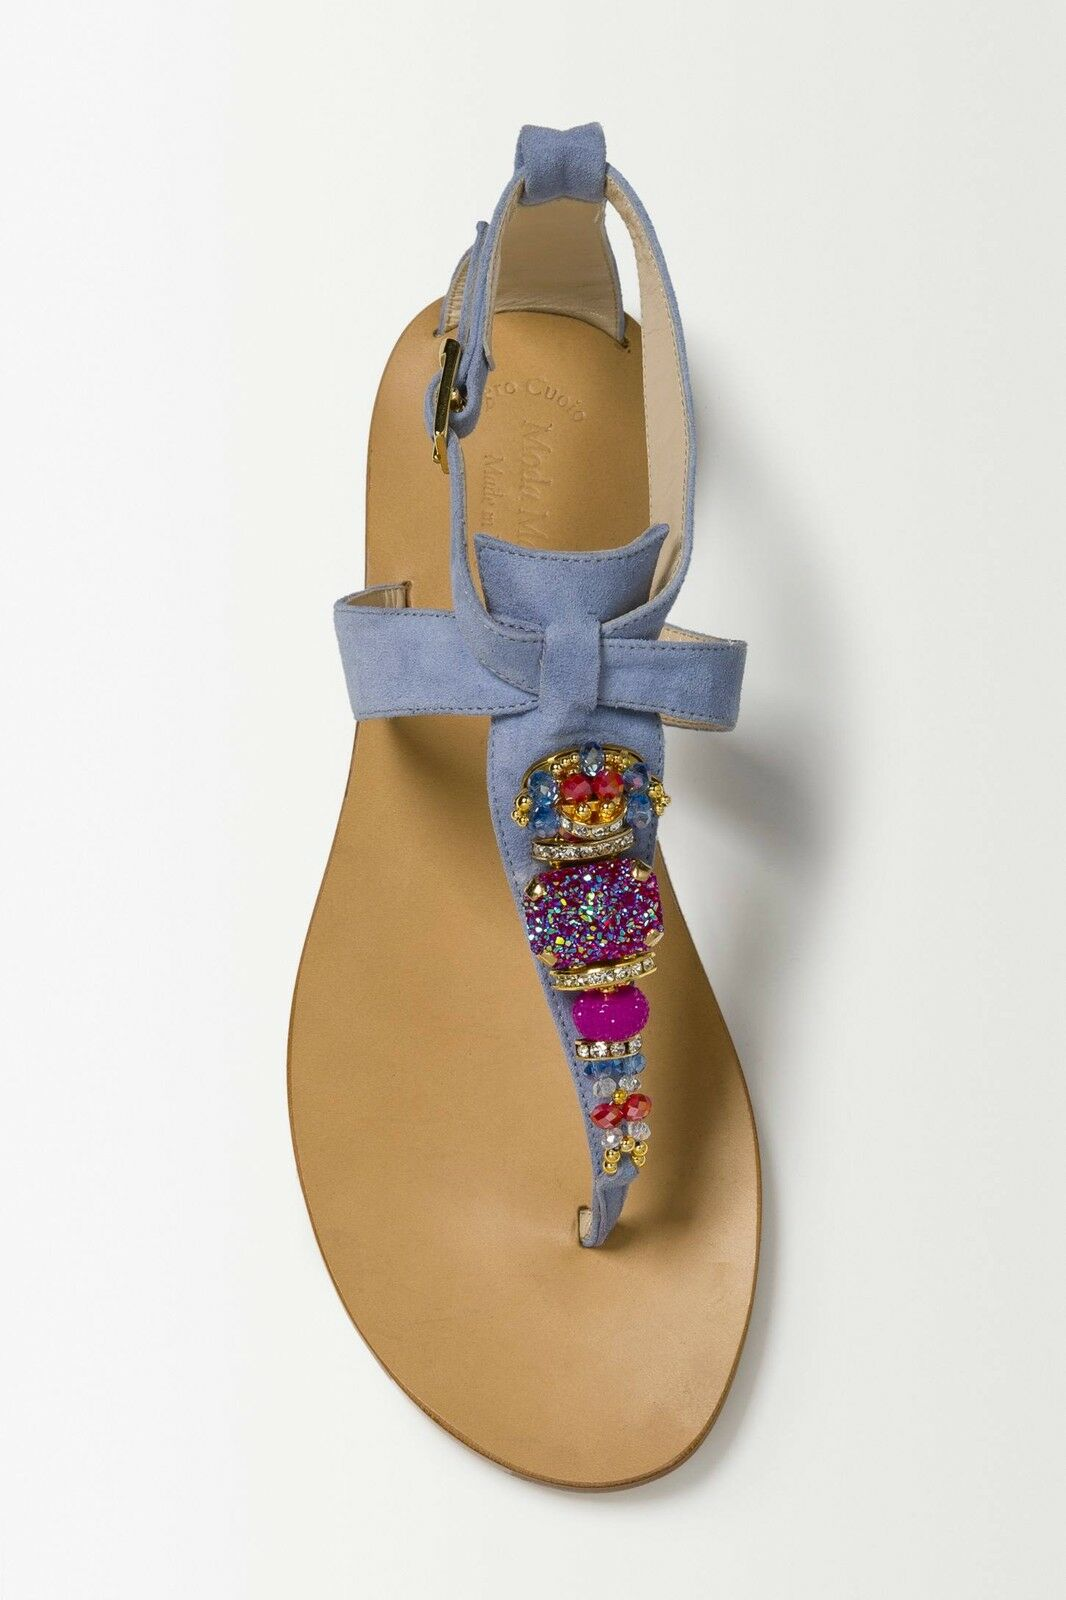 Z ANTHROPOLOGIE MODA MARINA purpleTA purpleC SUEDE BEADED JEWEL SANDALS 7 9 40